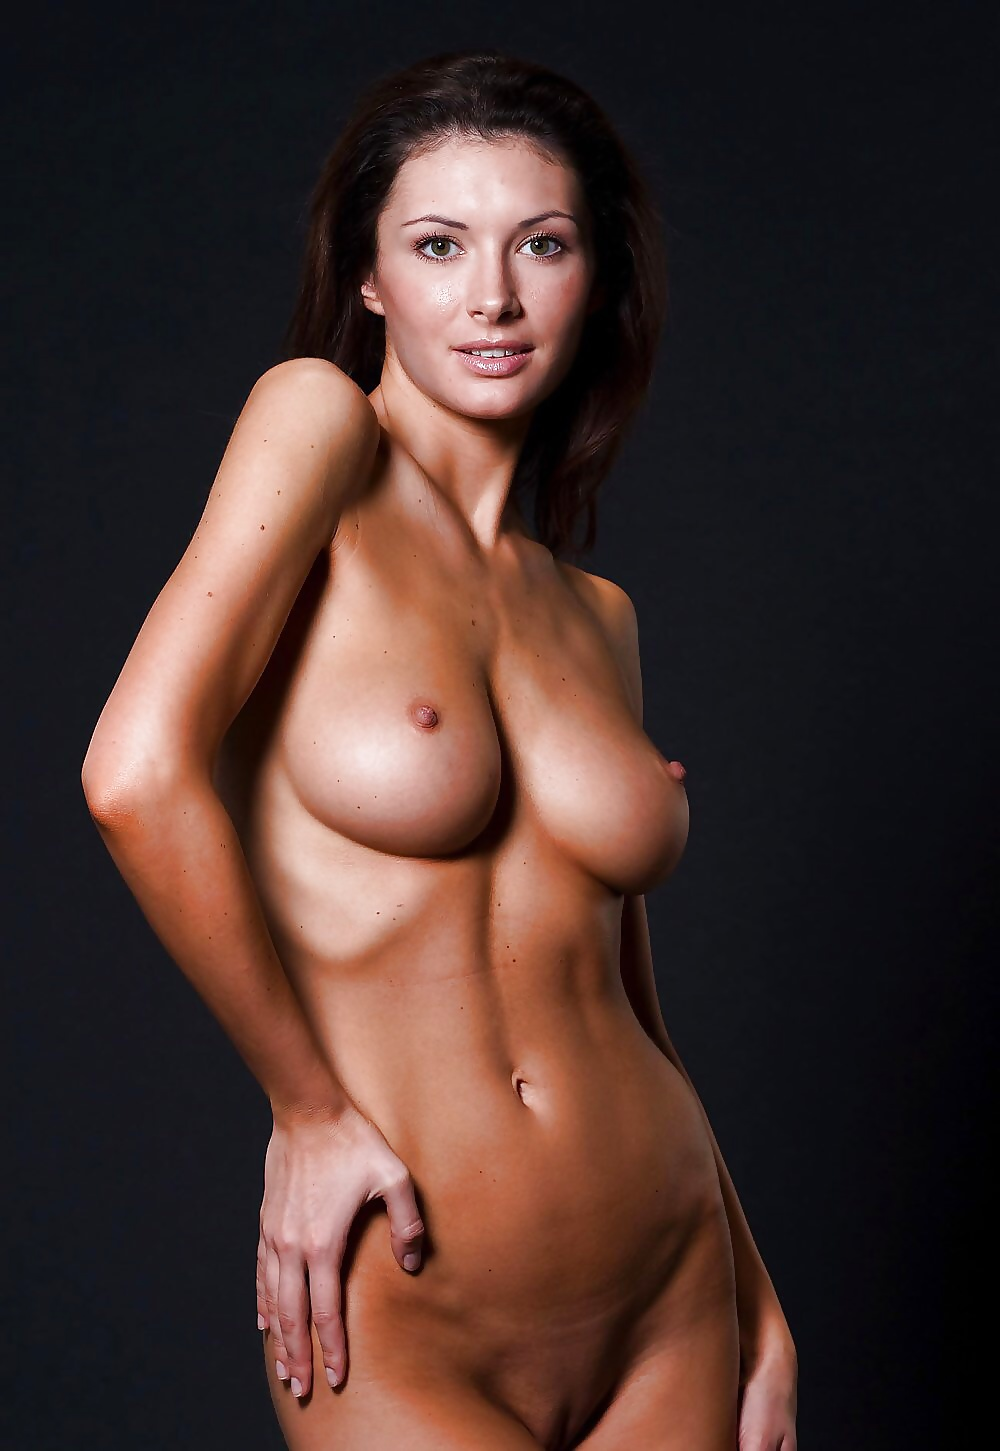 Body in mind laura christina nude